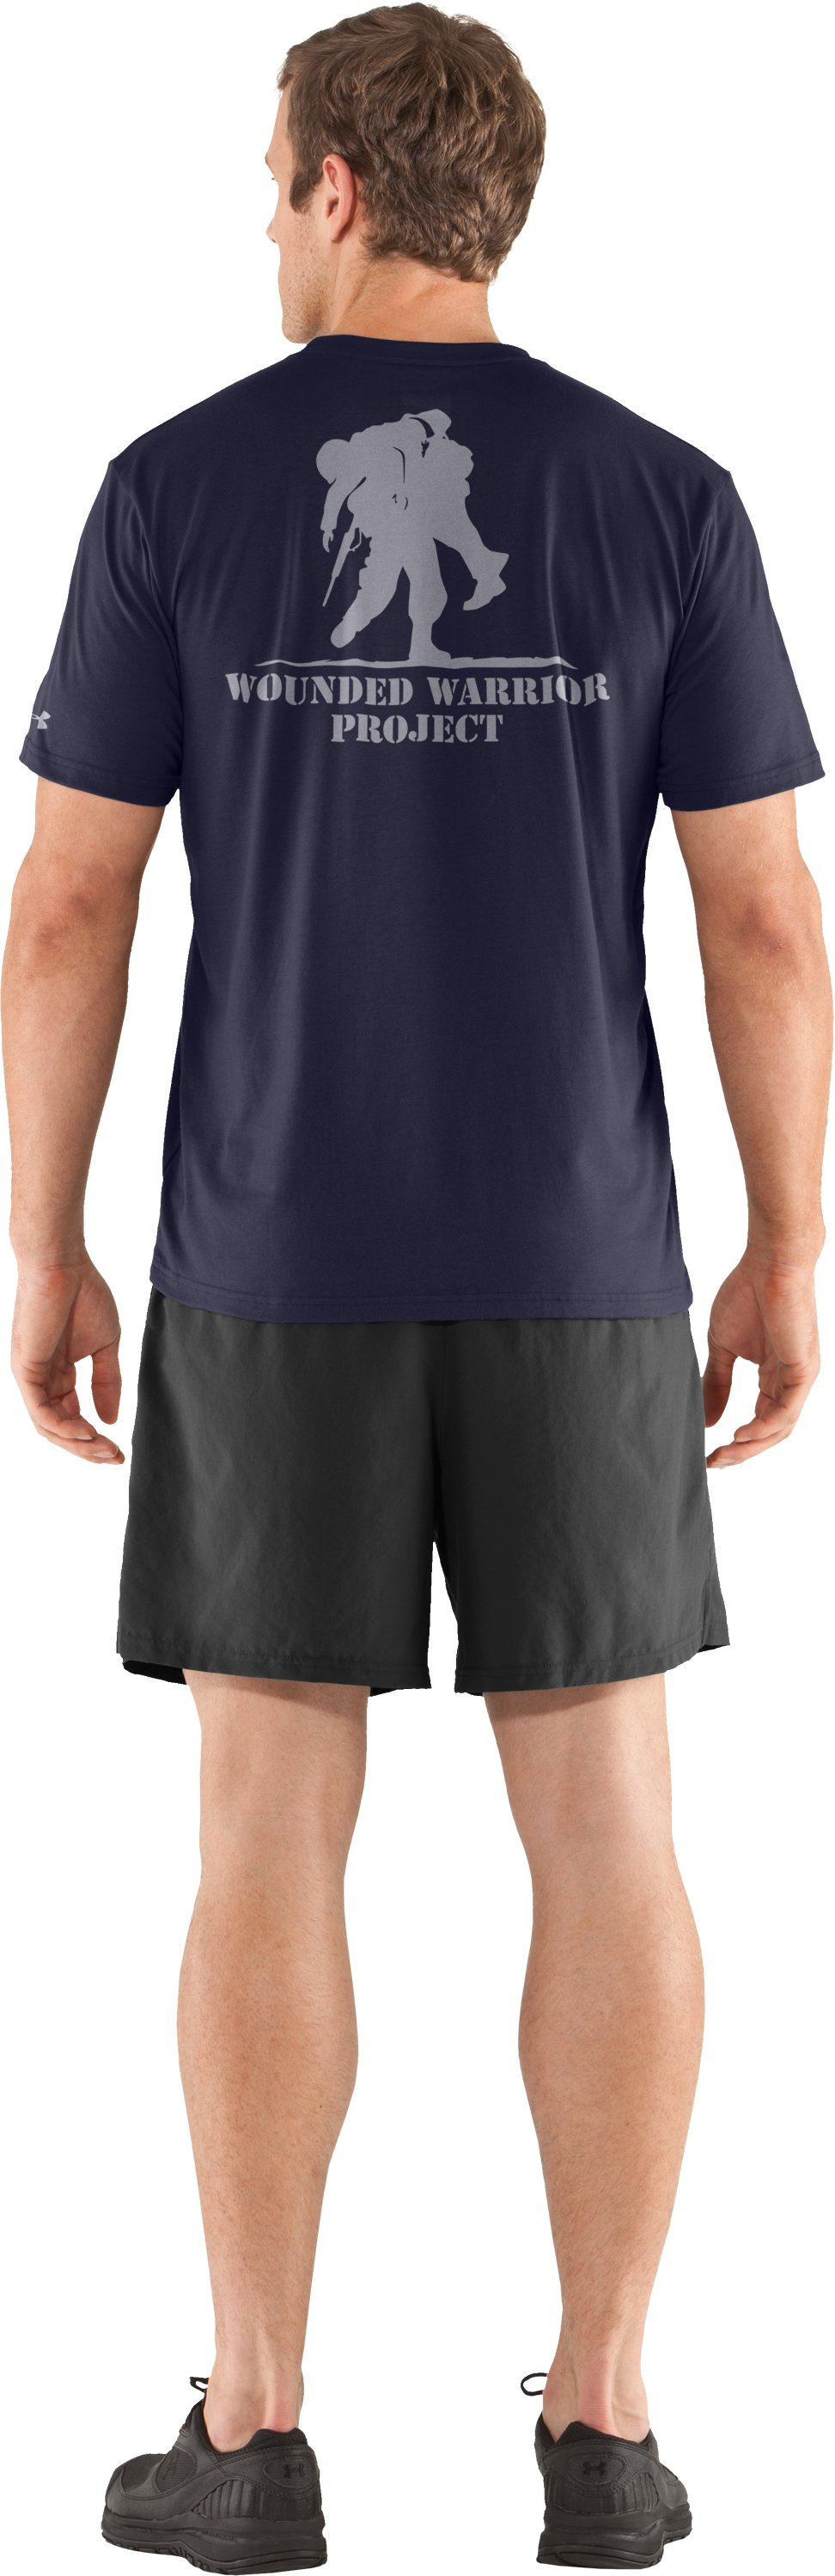 Men's WWP Graphic Short Sleeve T-Shirt, Midnight Navy, Back